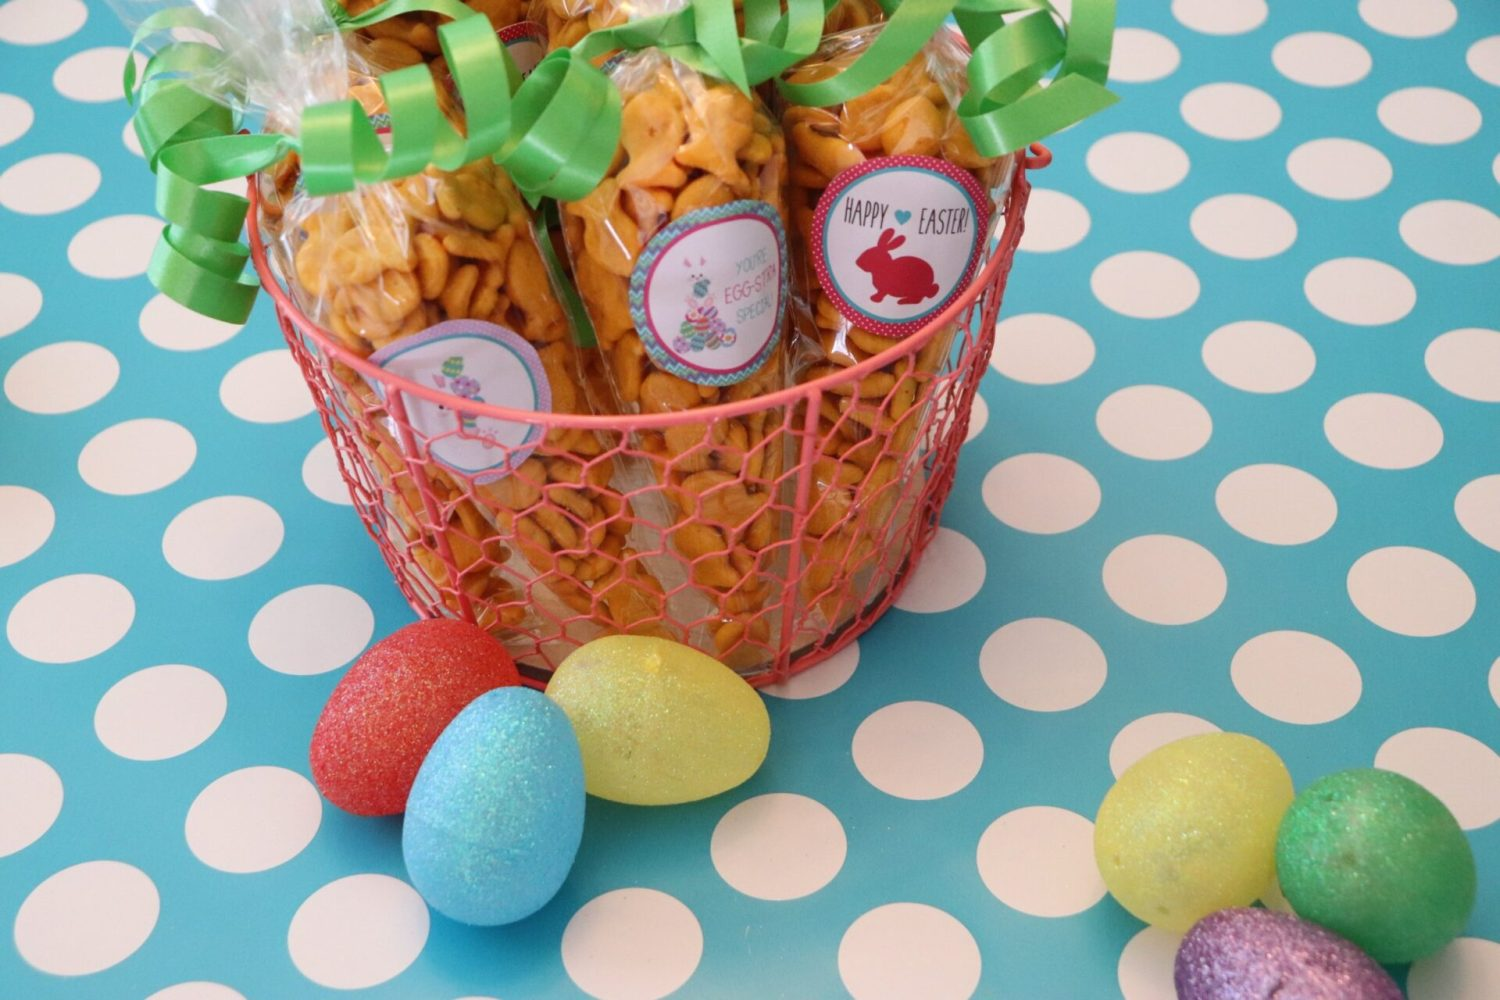 Looking for free Easter Printables this year? Well, look no further because we have the most adorable Easter stickers perfect for treat bags! And yes, we show you how to make it all right here!